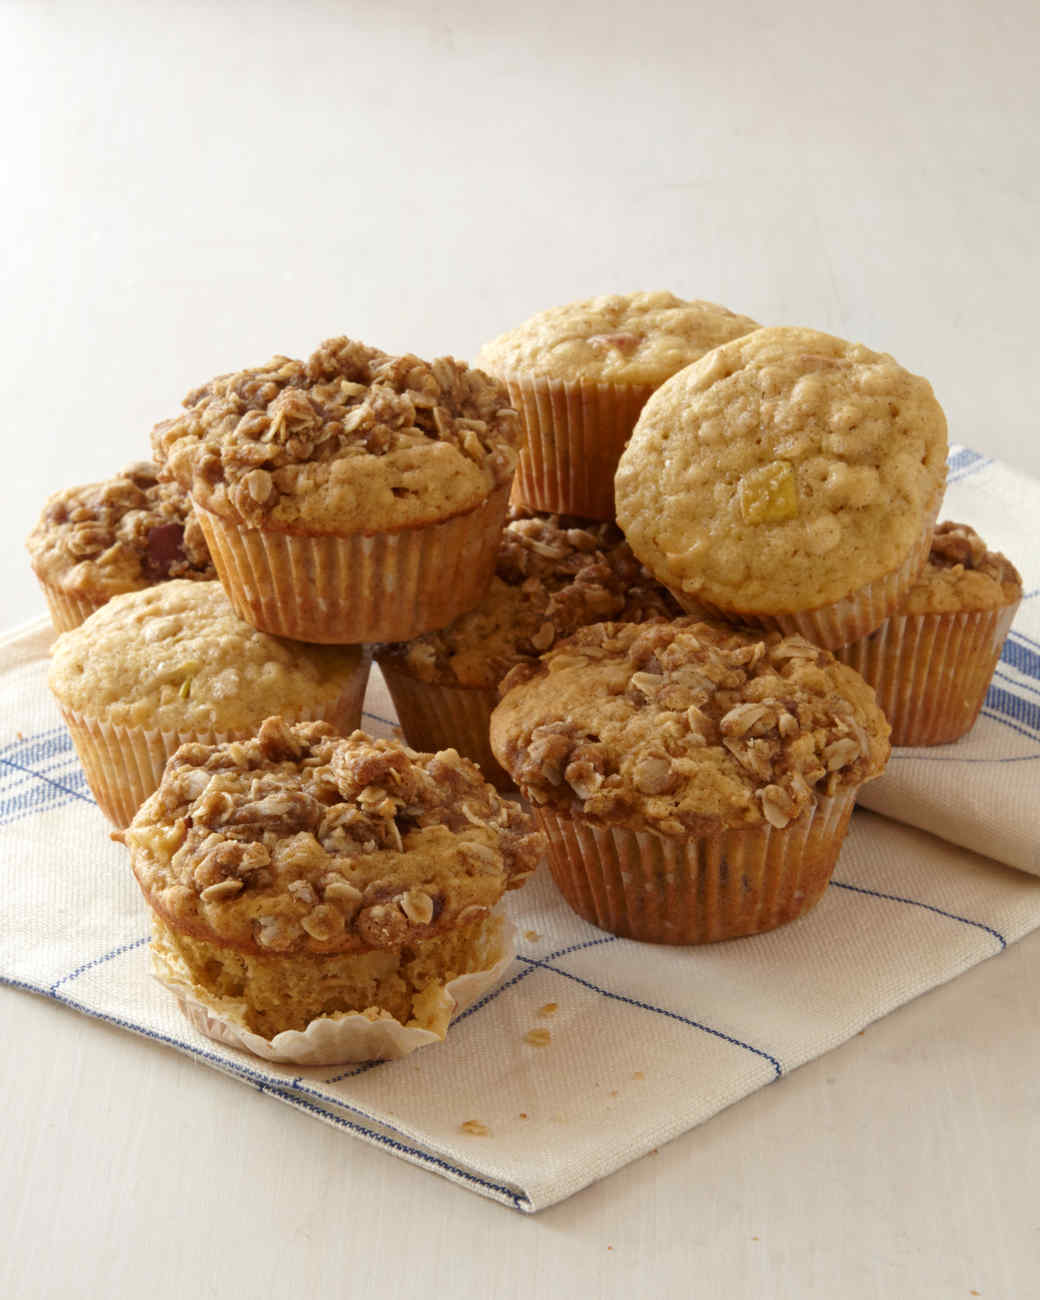 apple-oat-muffins-0091-d112215.jpg